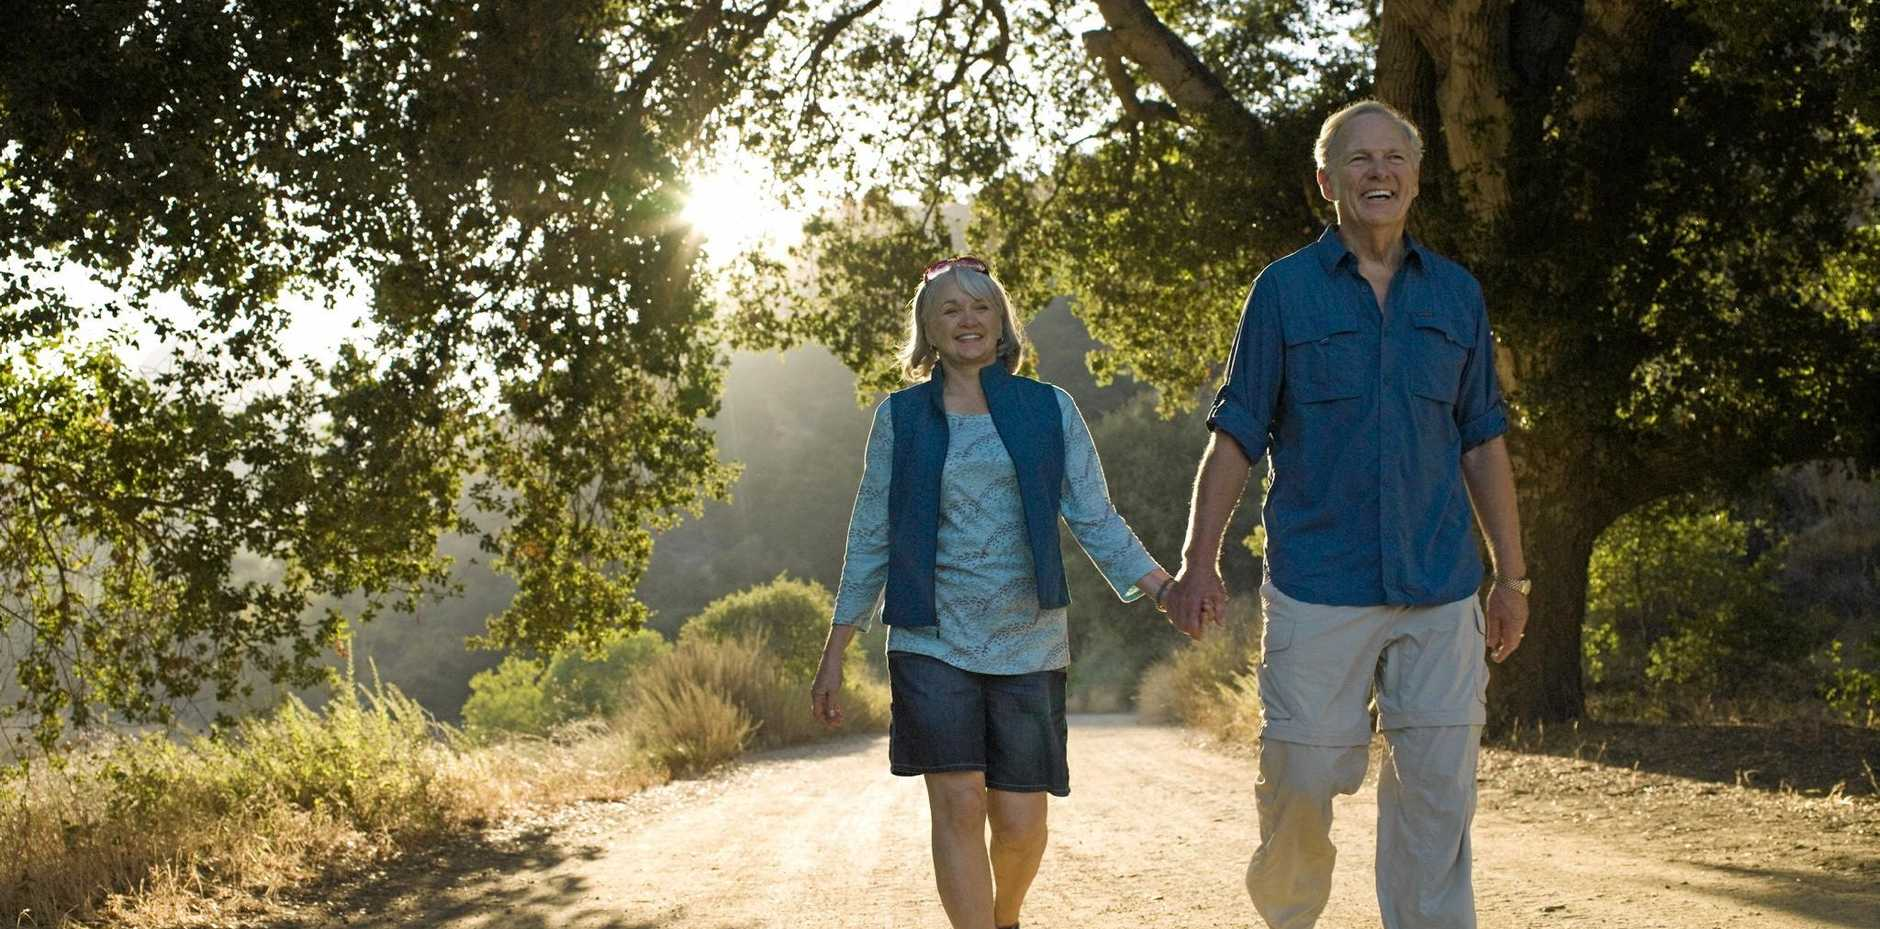 Sedentary older Australians are being encouraged to get walking to help reduce their time in hospital.